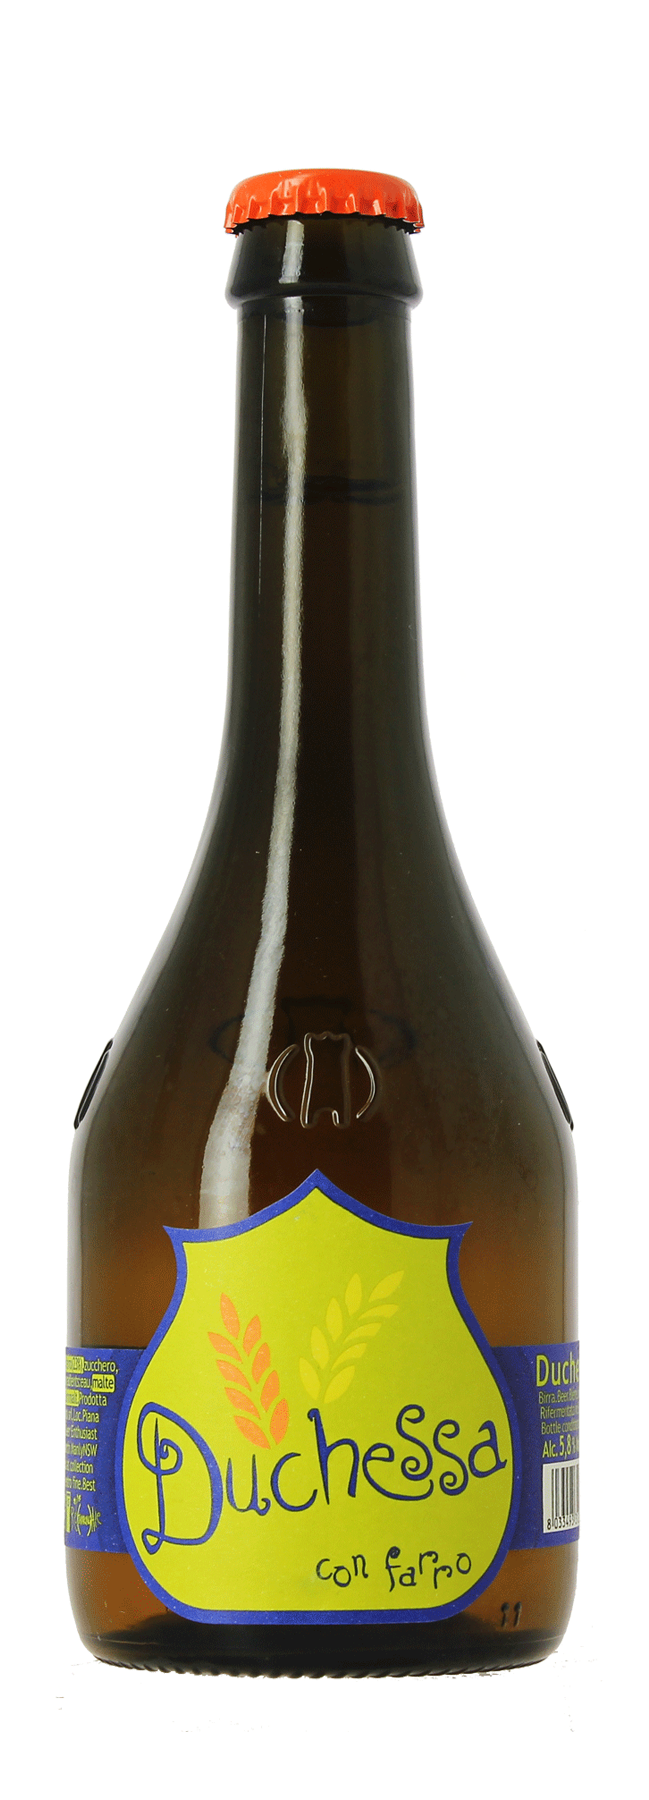 https://www.romabeercompany.it/wp-content/uploads/2019/06/duchessa-1.png